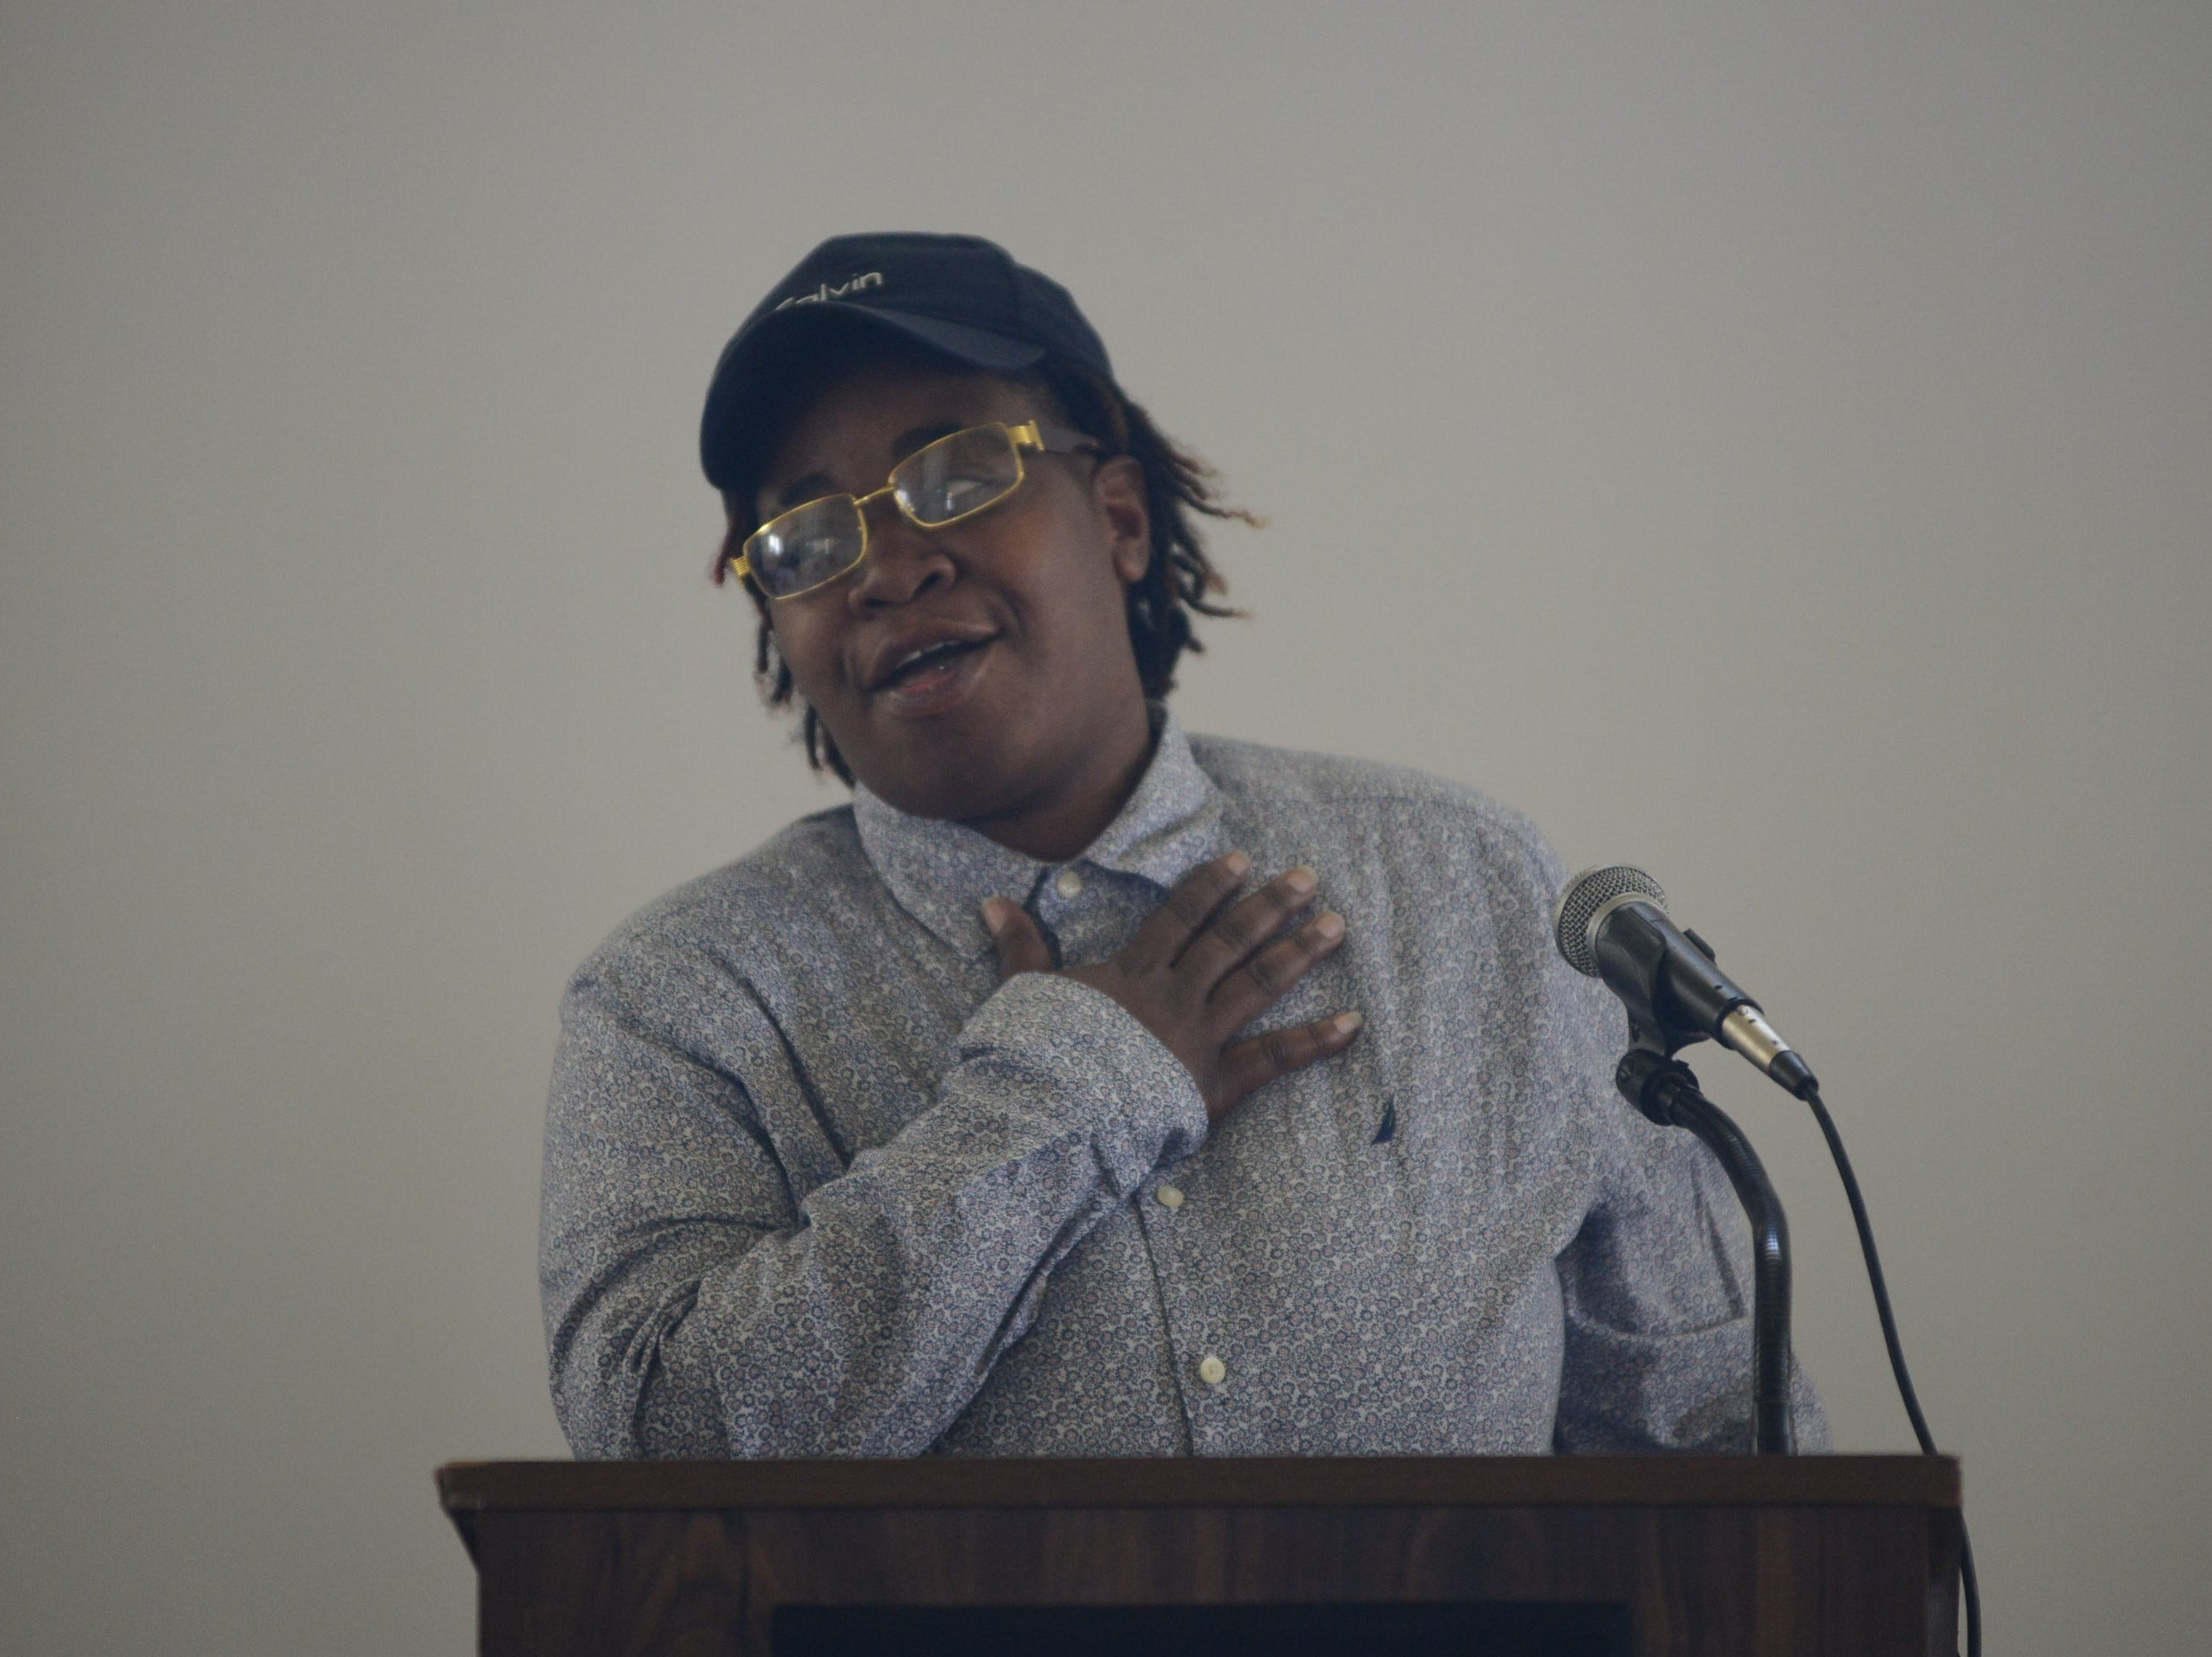 Jackson Recovery Court program participant Ashley Reid speaks to the crowd at the Jackson Recovery Court graduation luncheon at the New Southern Hotel on Wednesday, April 3. Reid is in phase three of the program, and will graduate after completing the final phase.